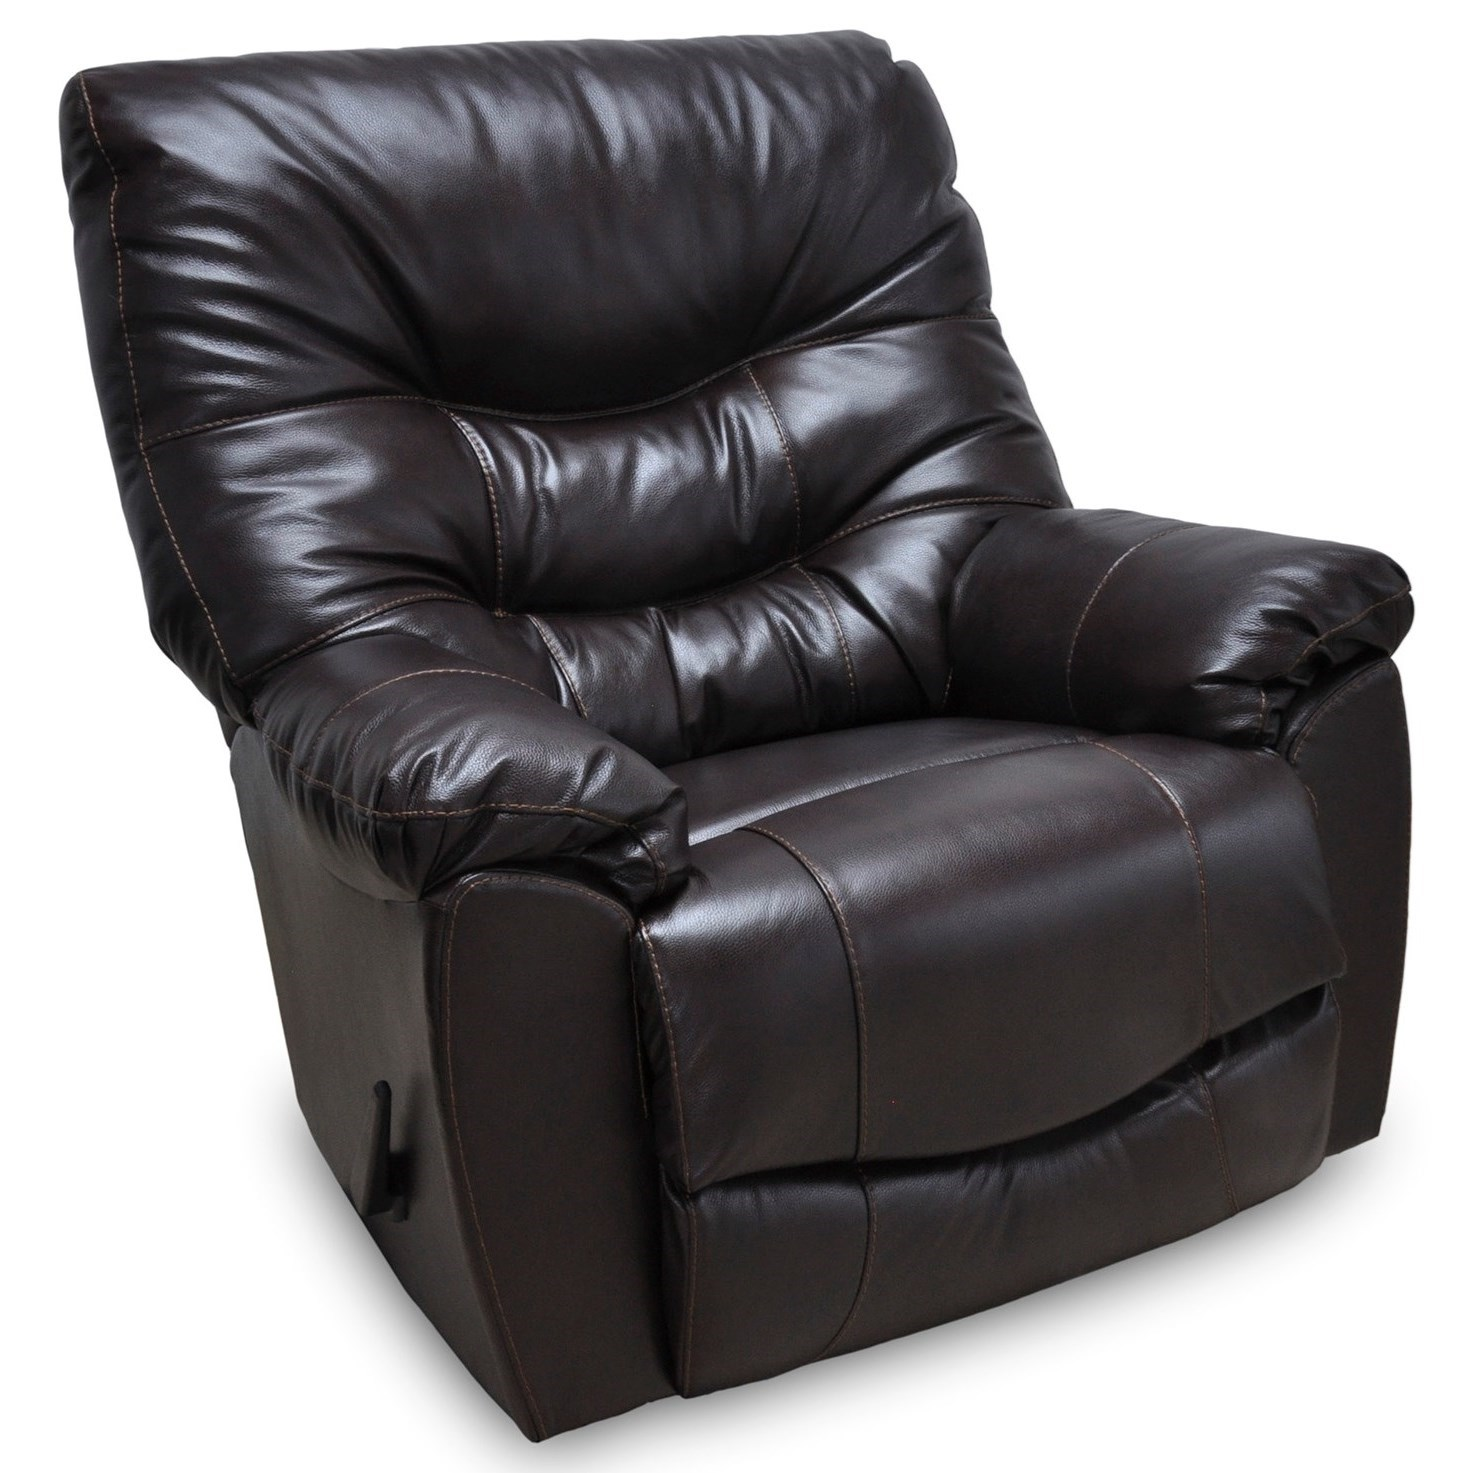 Franklin Recliners Trilogy Power Rocker Recliner with USB Port by Franklin at Catalog Outlet